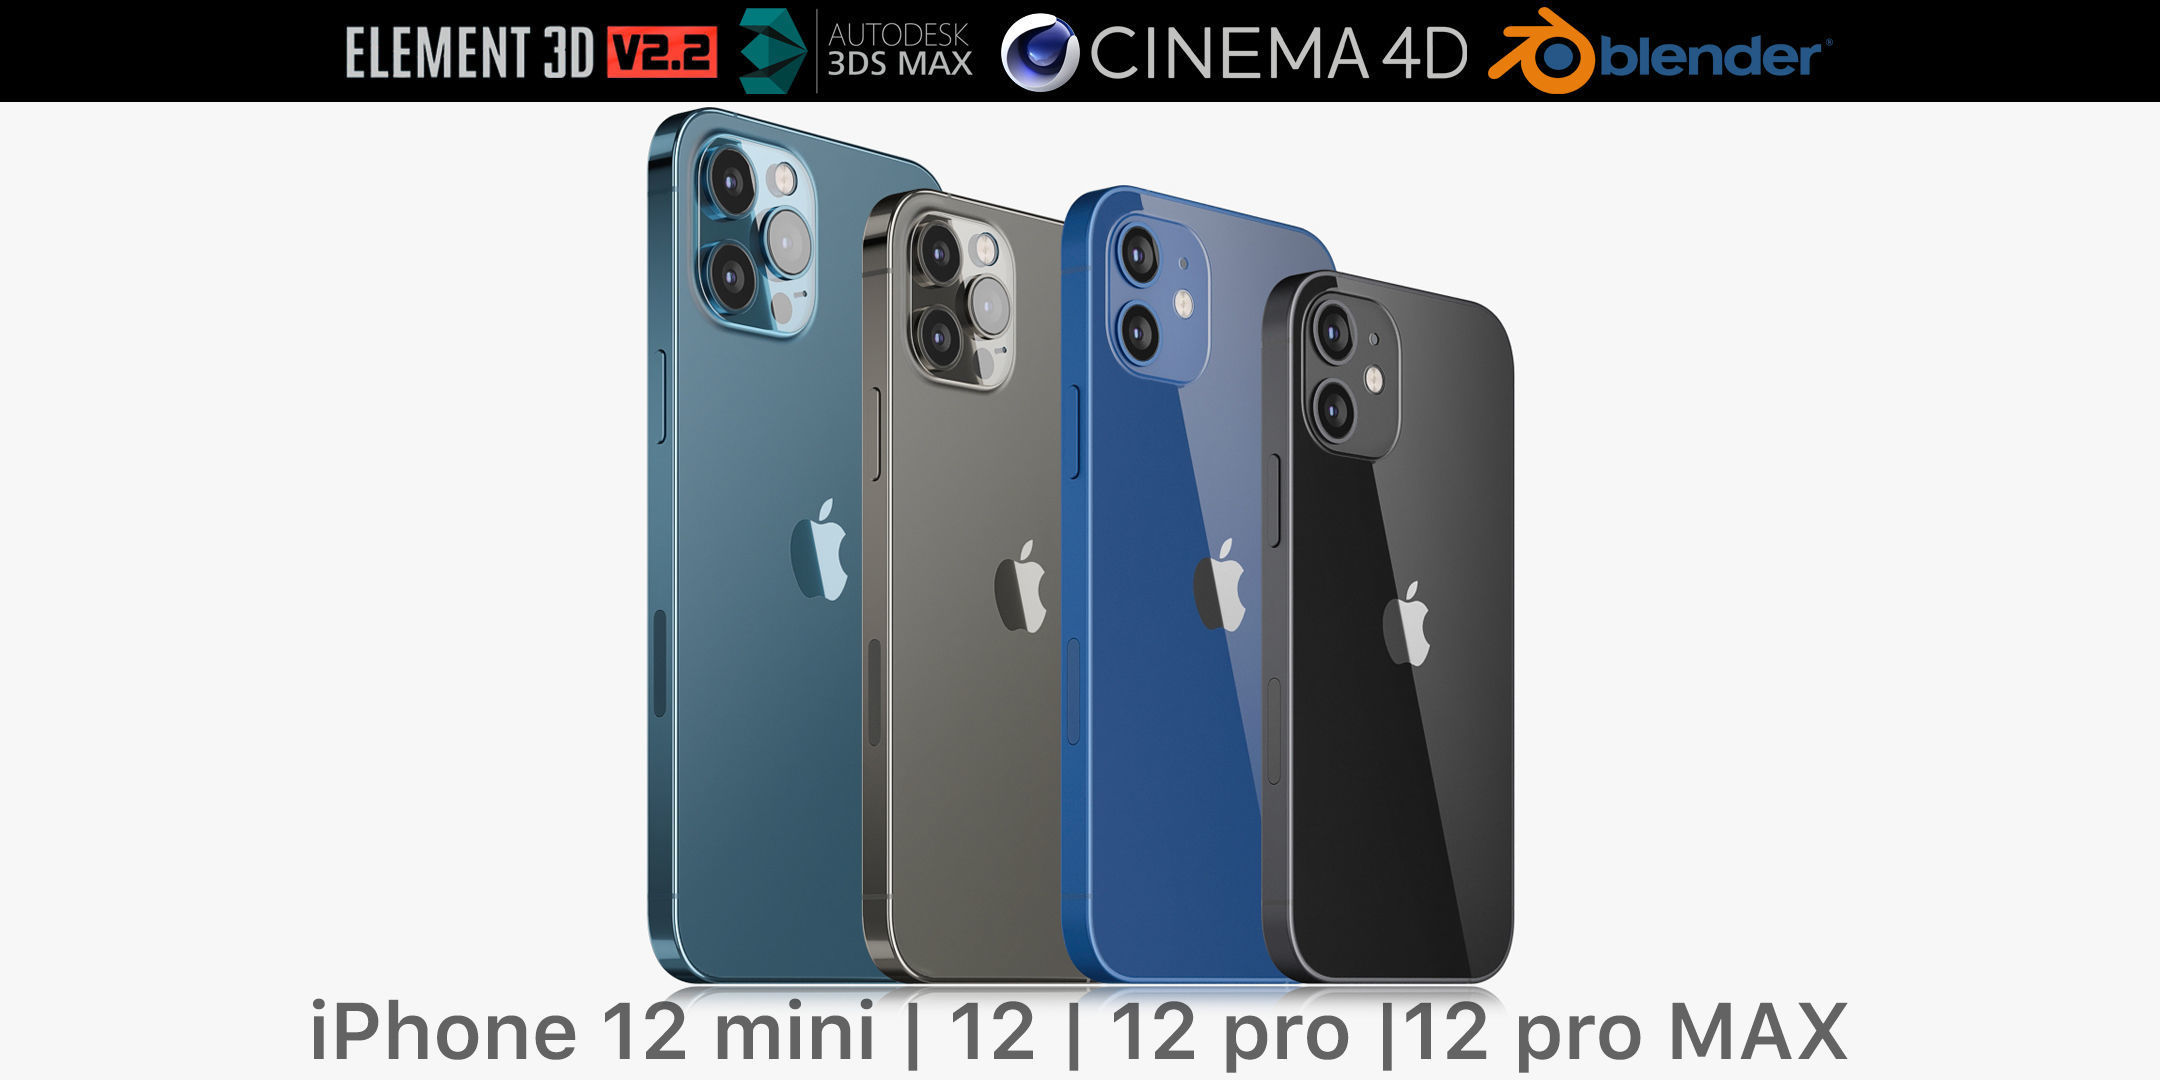 Apple iPhone 12 mini and 12 and 12 pro and 12 pro MAX